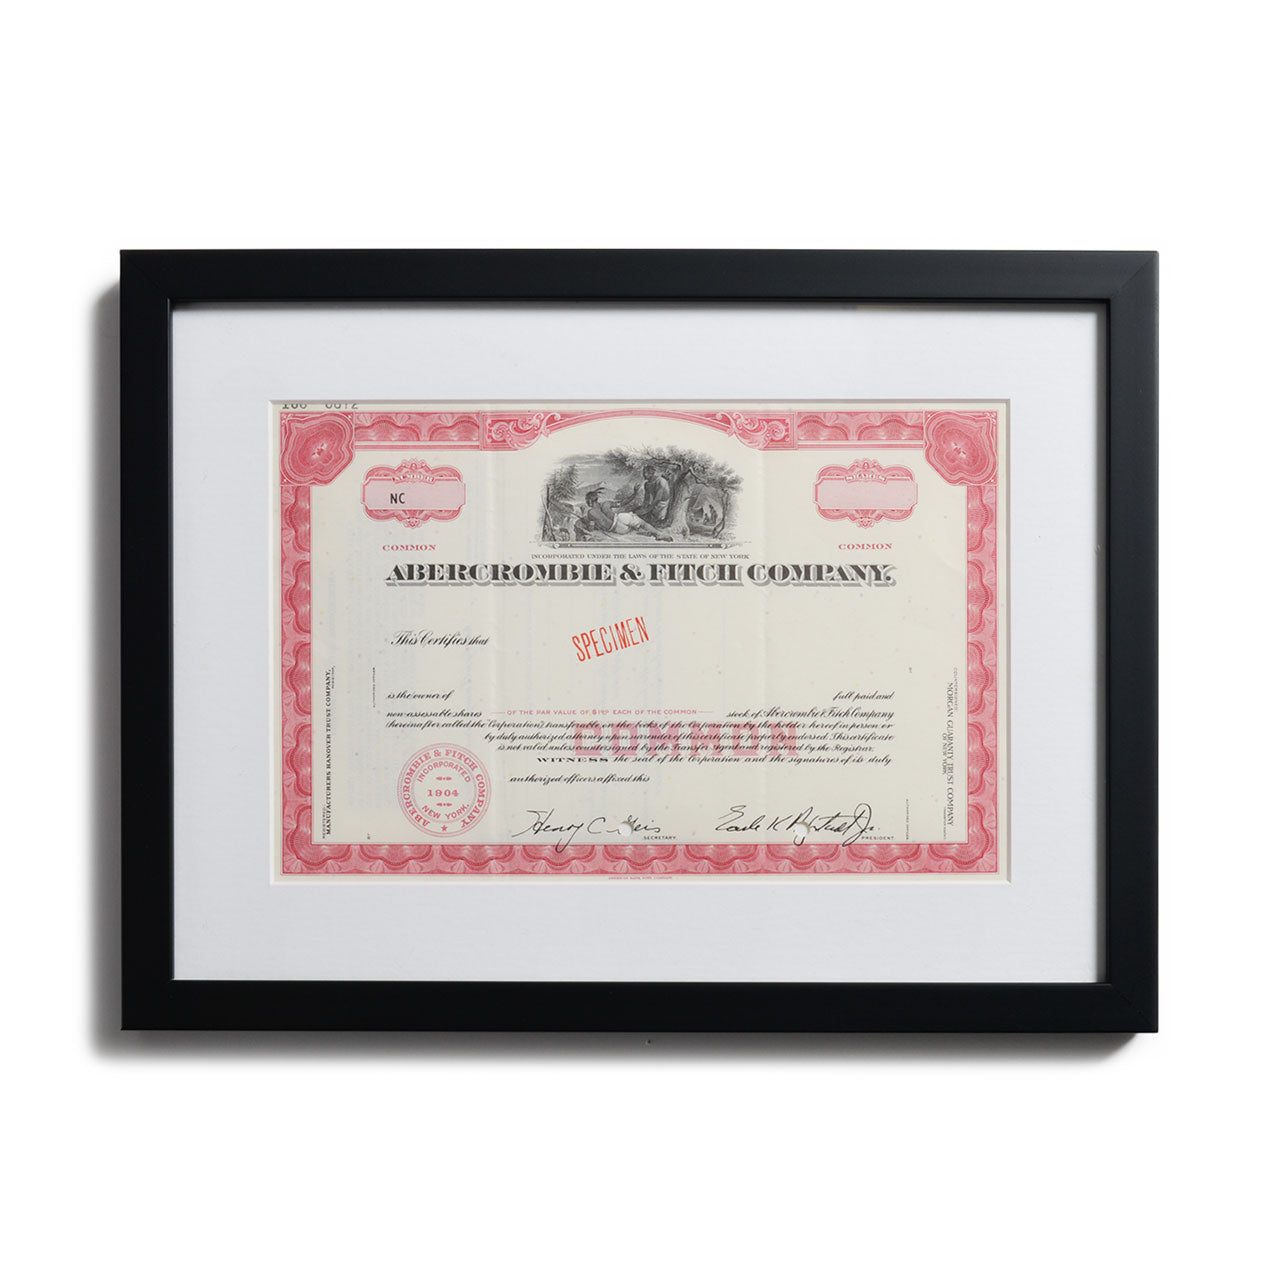 Abercrombie & Fitch Framed Stock Certificate